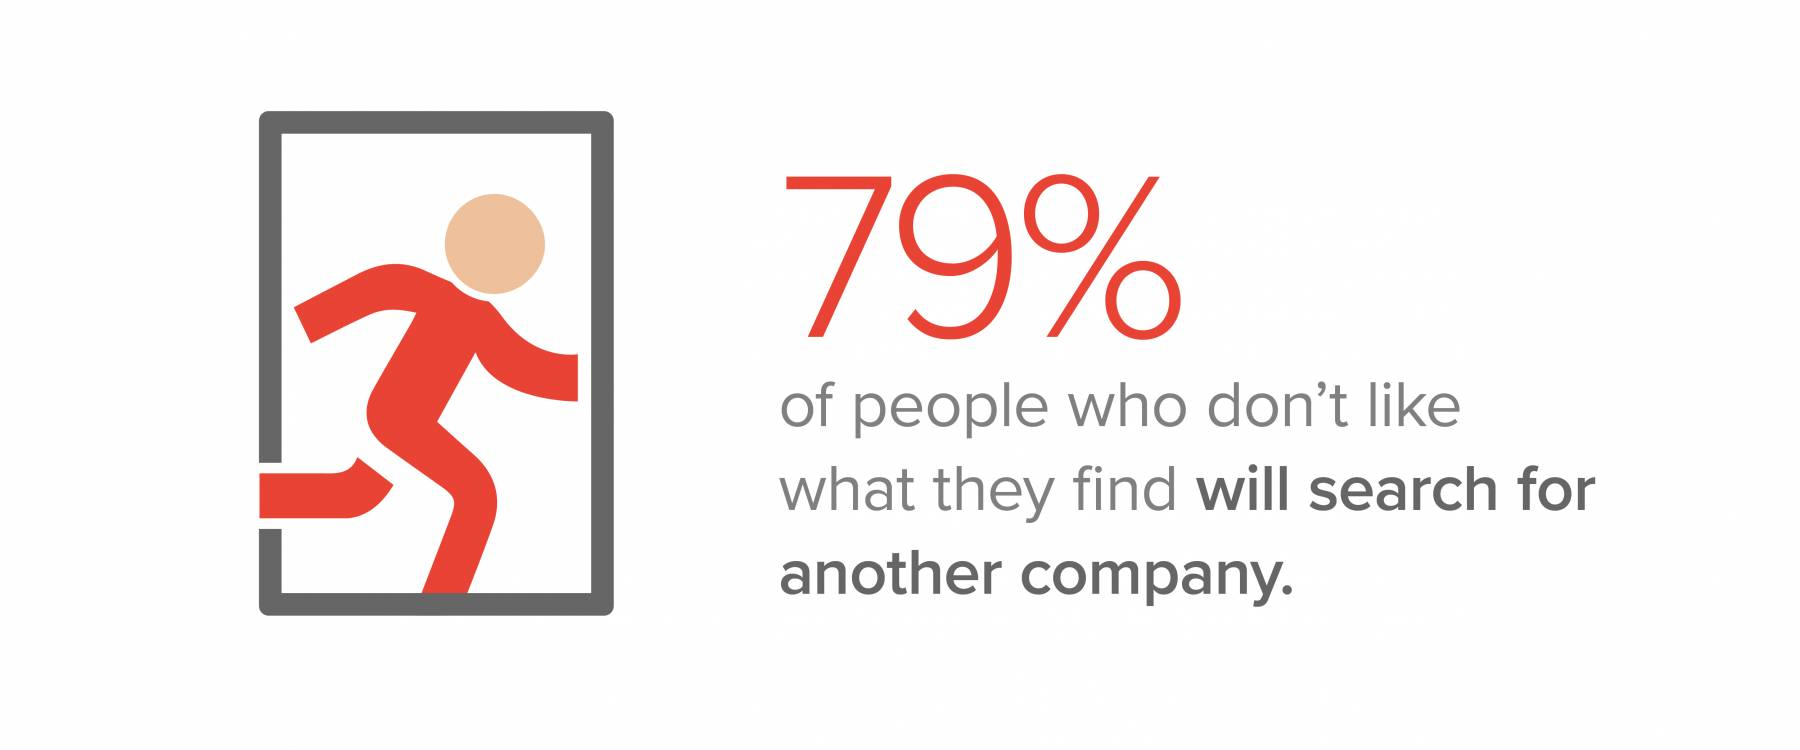 79% of people who don't like what they find will search for another company.